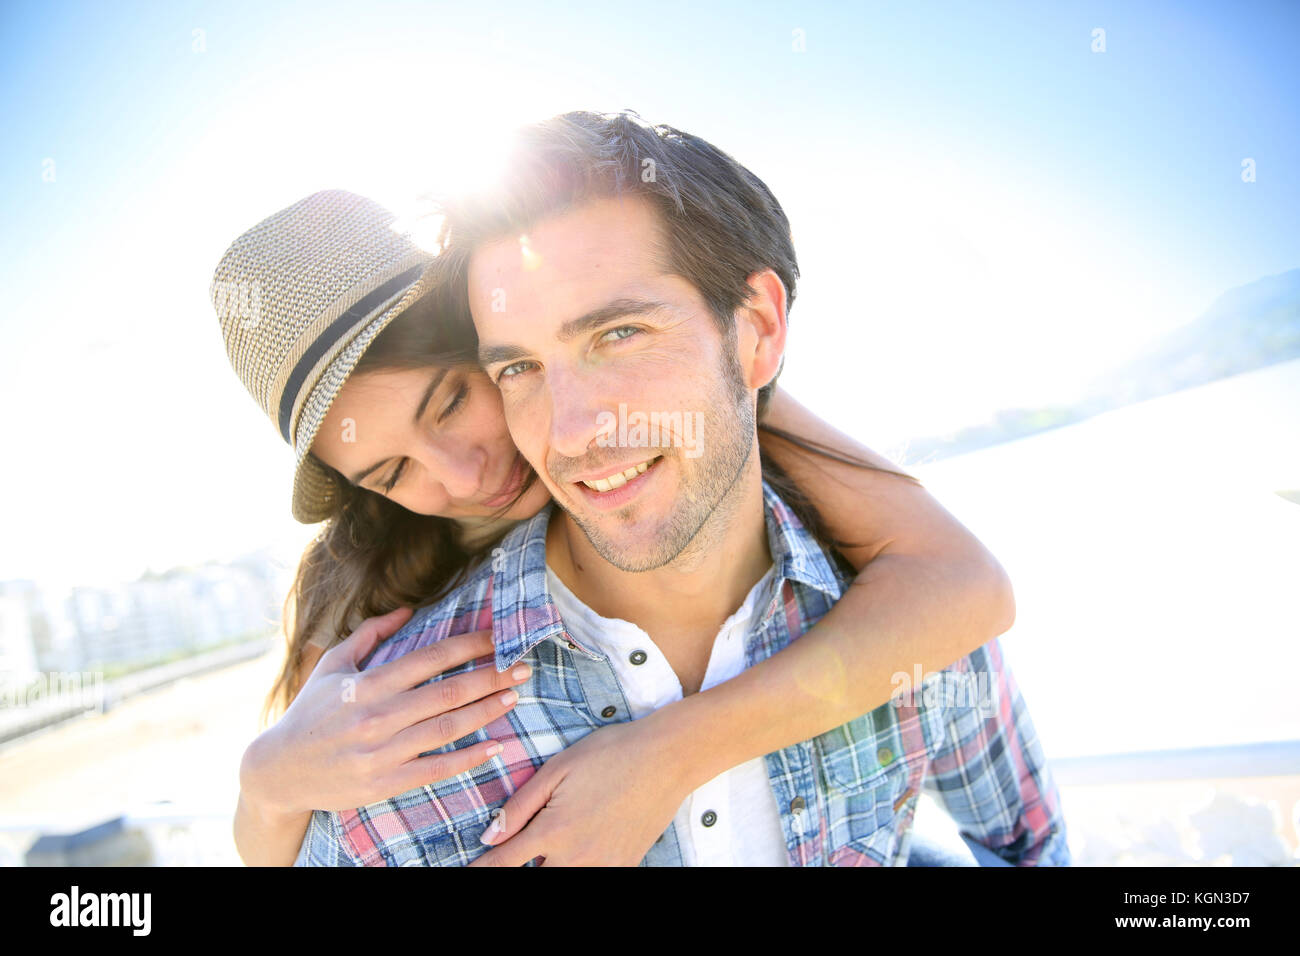 Man giving piggyback ride to girlfriend at the beach - Stock Image